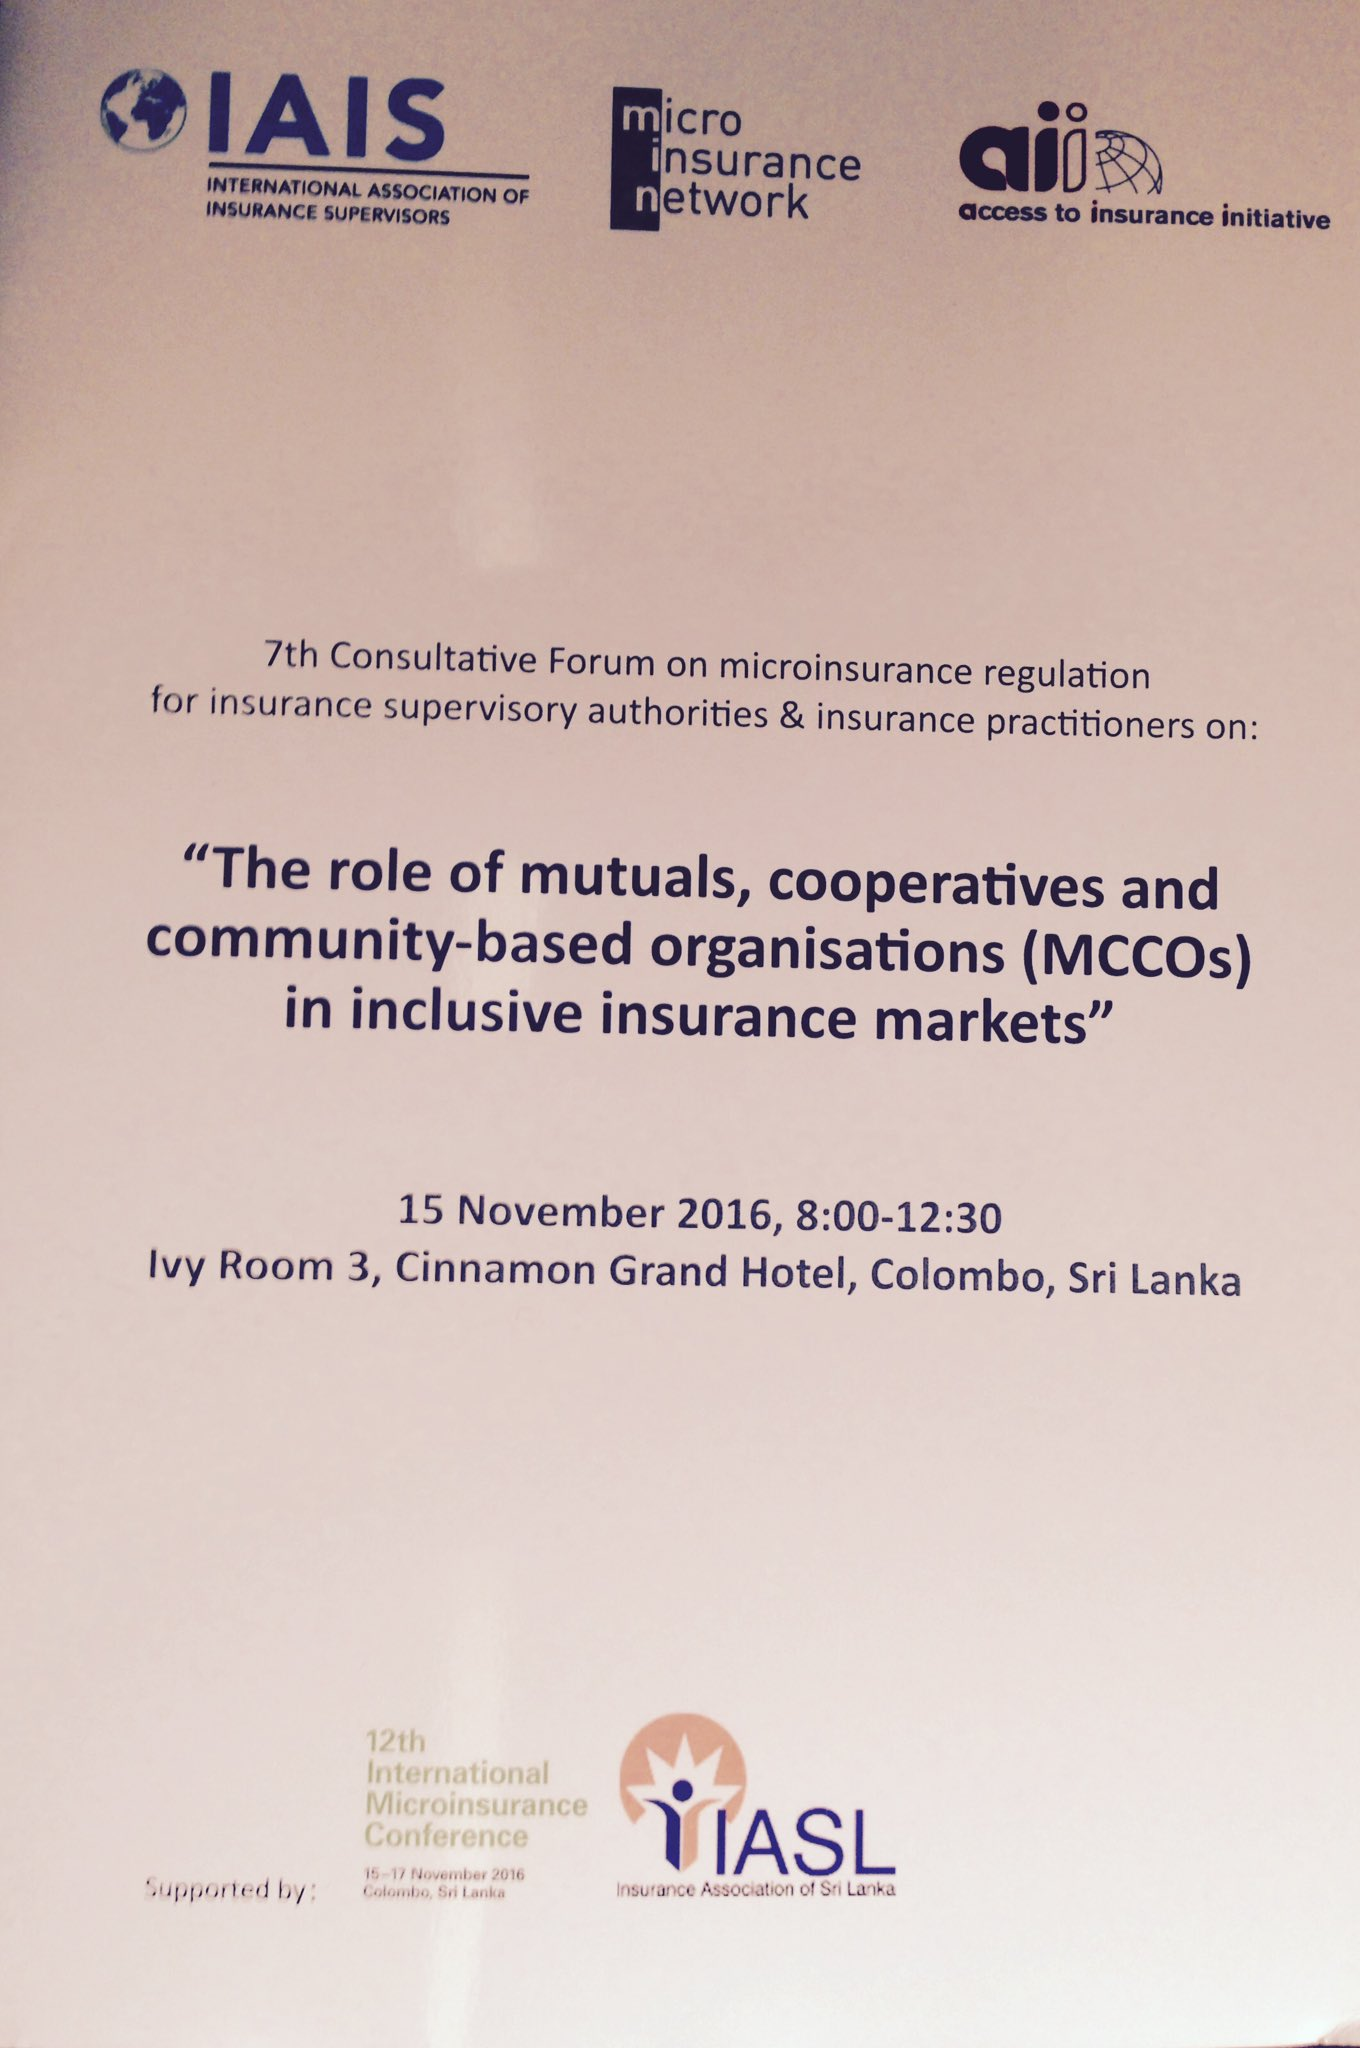 Kicking off our week at #12thIMC w/ 7th A2ii IAIS @NetworkFlash consultative forum on the role of MCCOs in inclusive #insurance markets! https://t.co/a3I9M4B51h